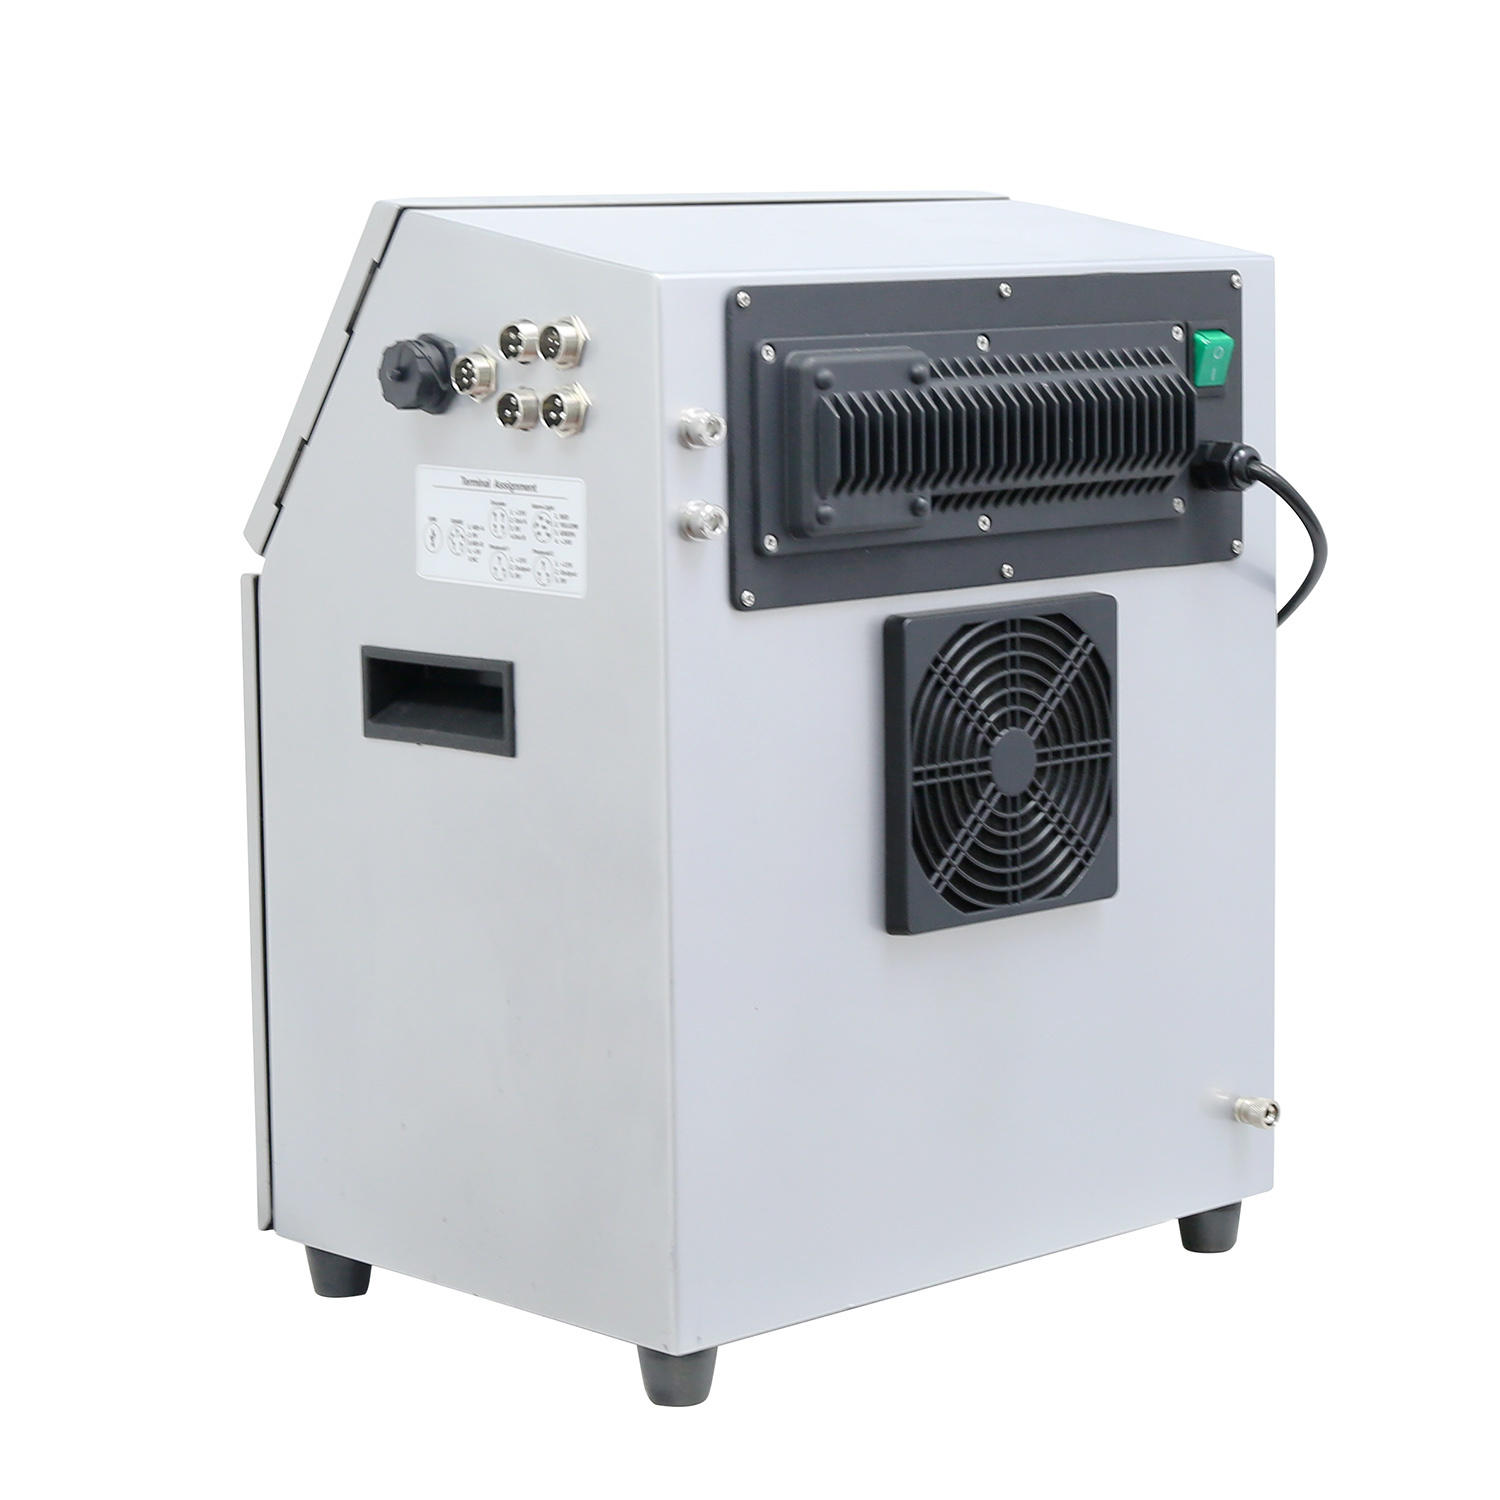 Lead Tech Lt800 Barcode Printer